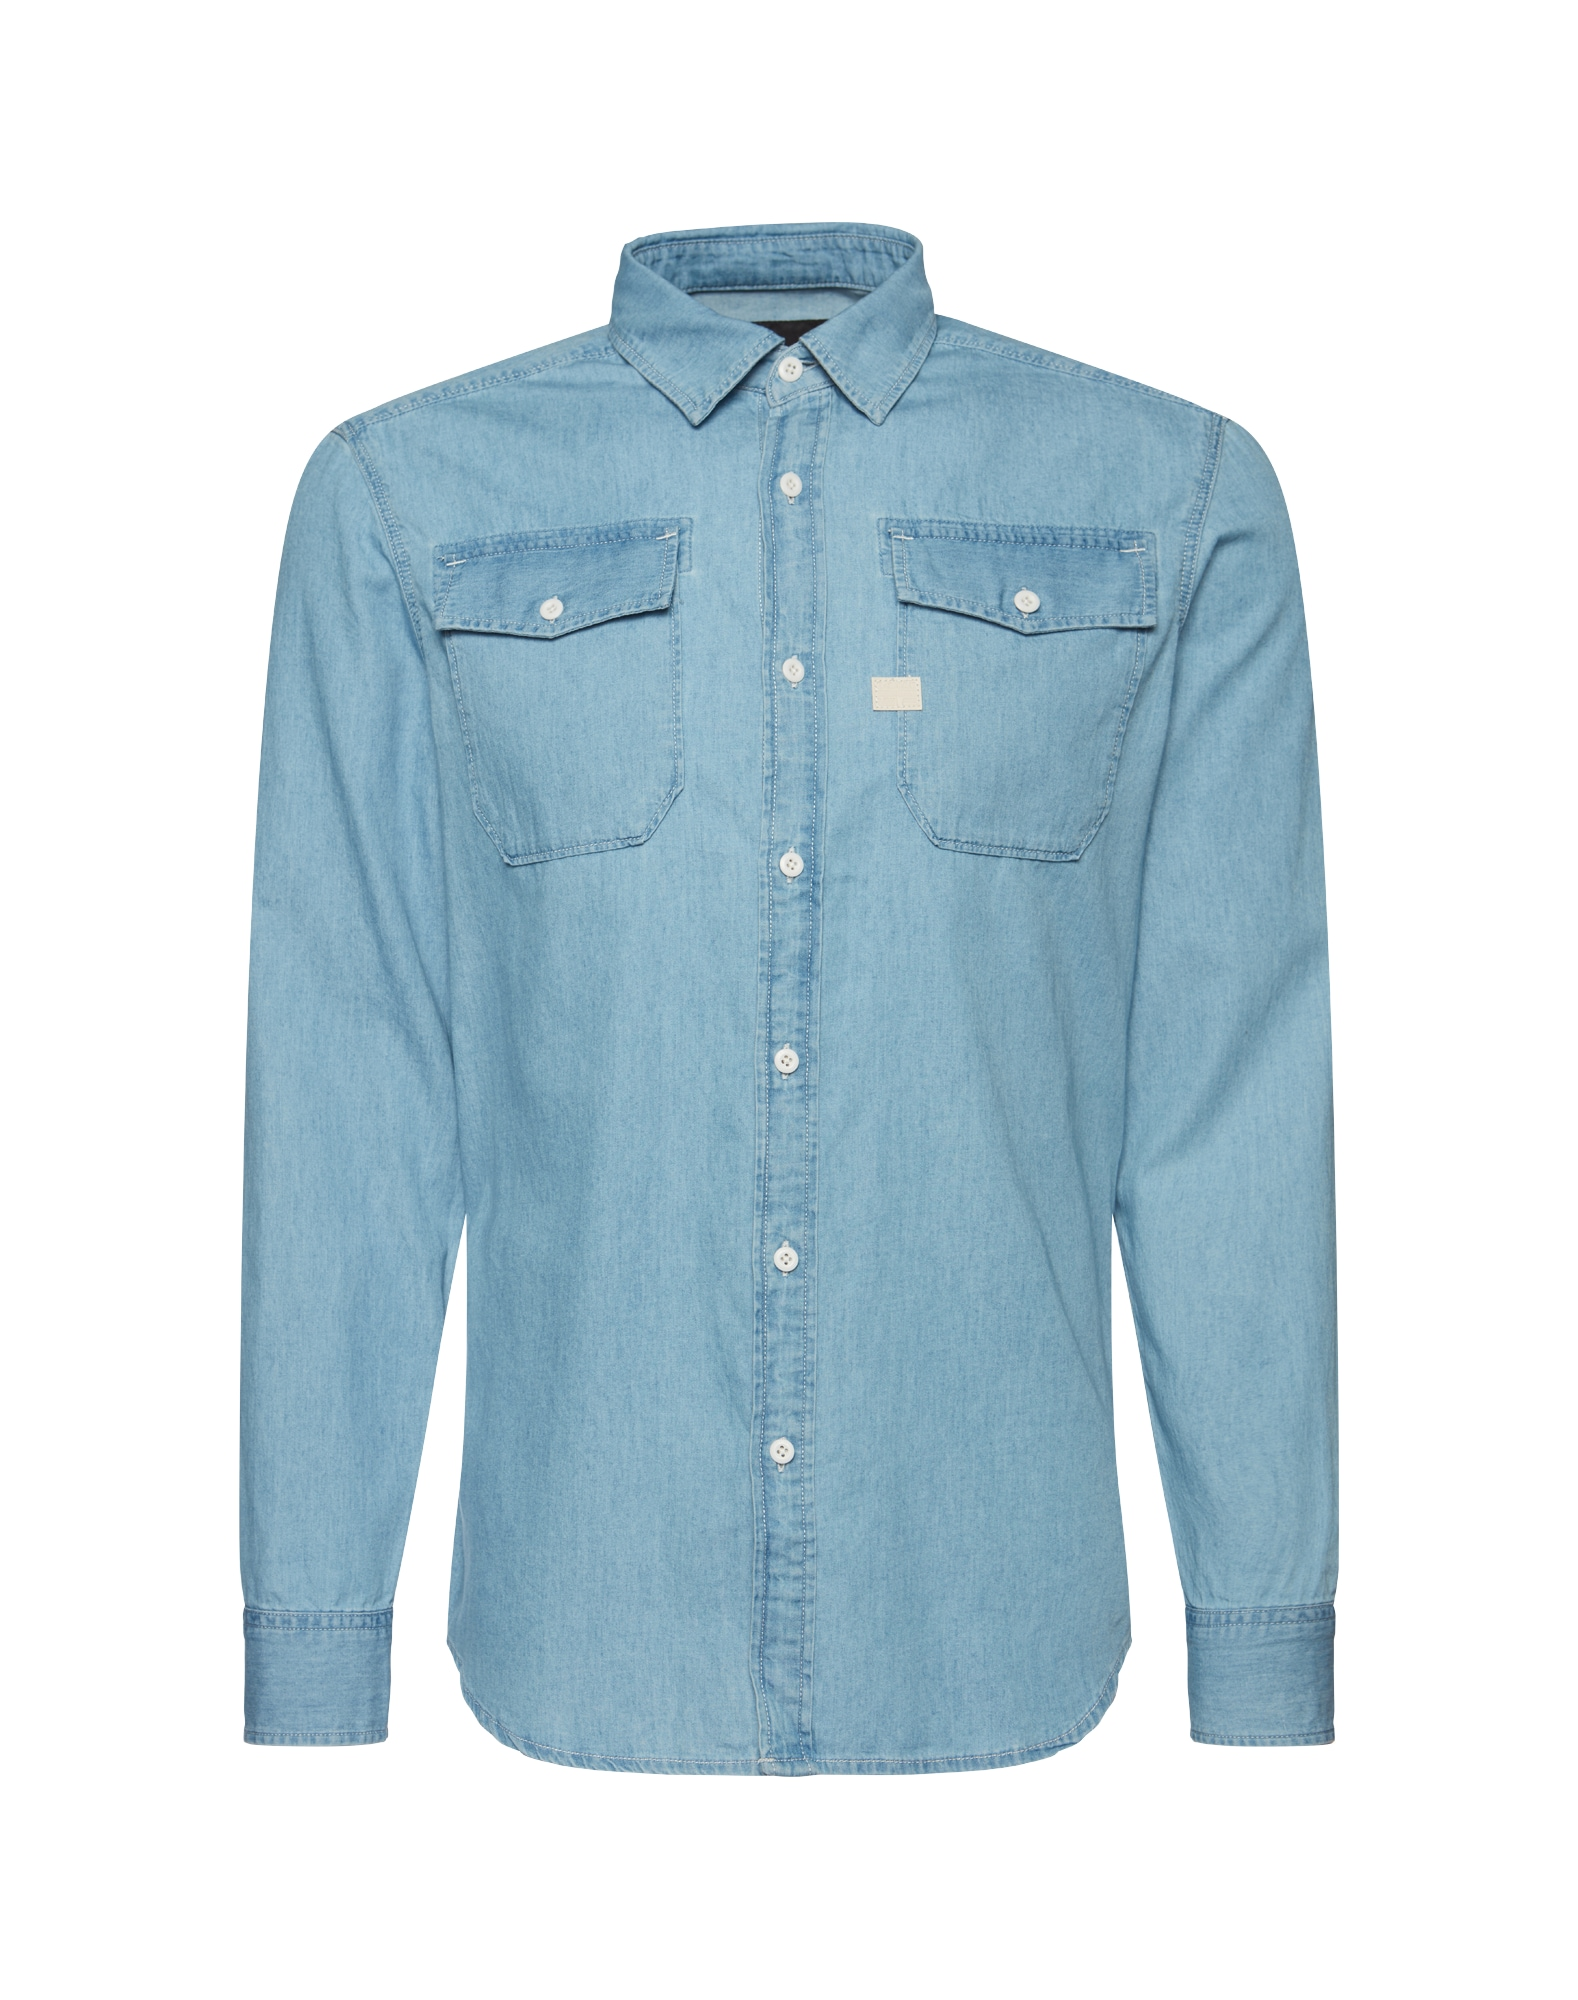 G-STAR RAW Heren Overhemd Landoh Shirt l s blue denim